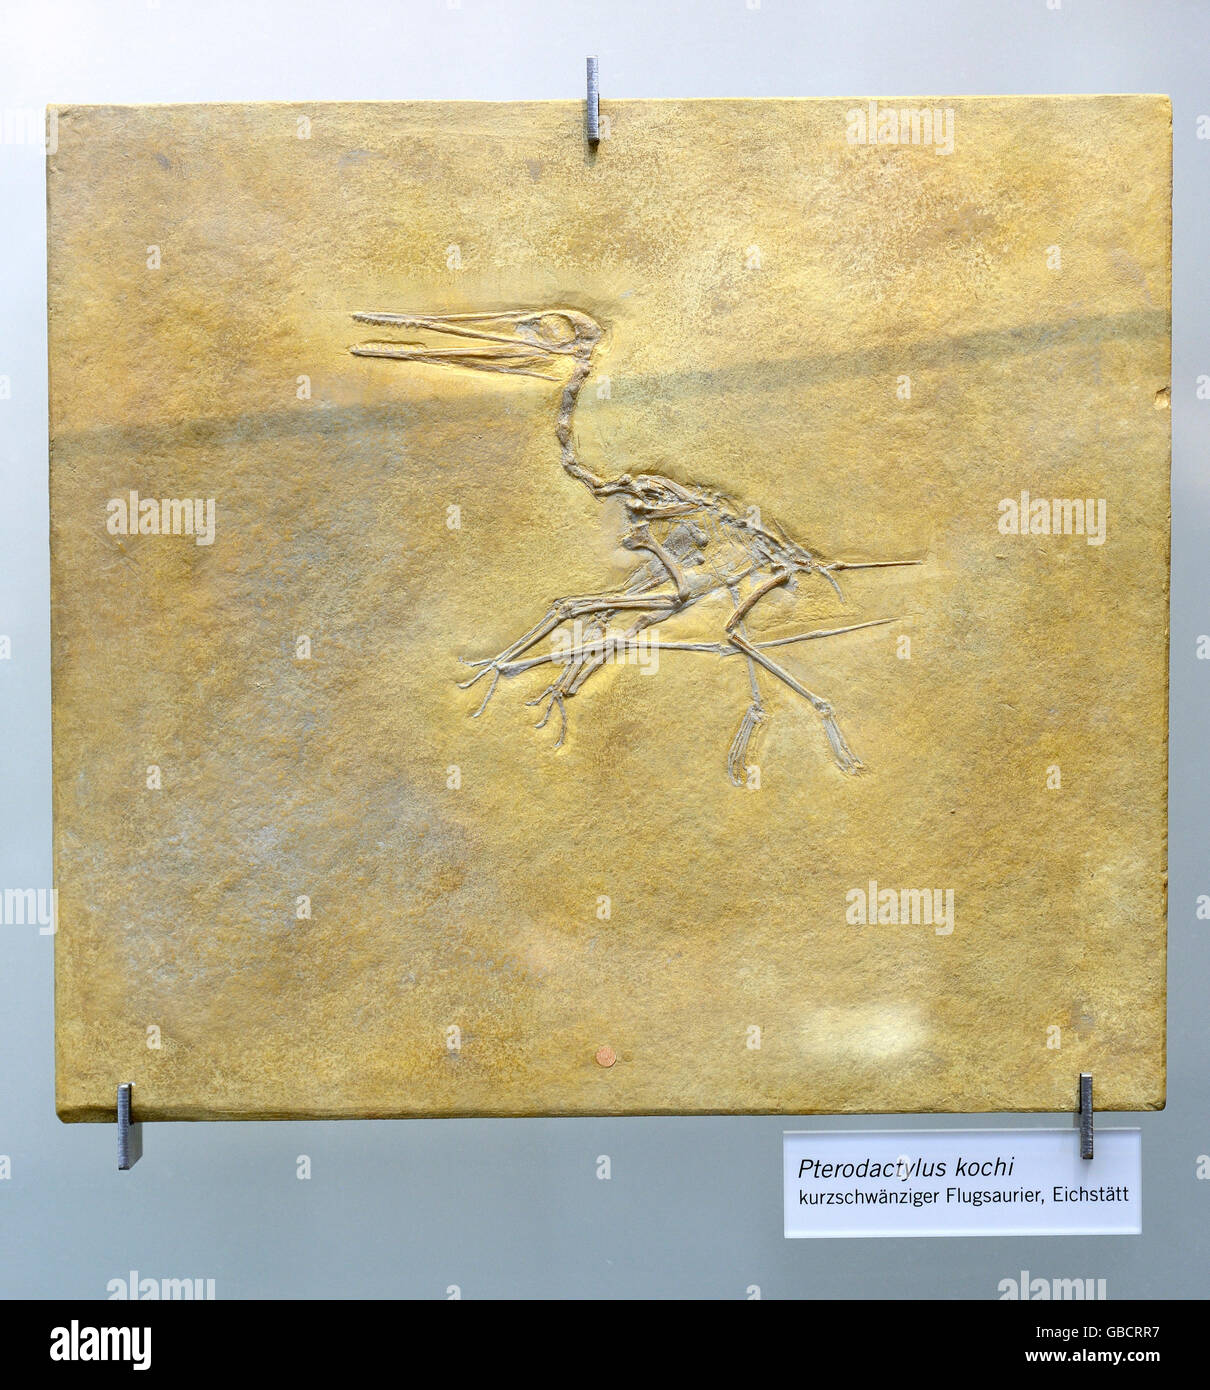 Fossil of Pterodactylus kochi, museum of natural history, Berlin, Germany - Stock Image